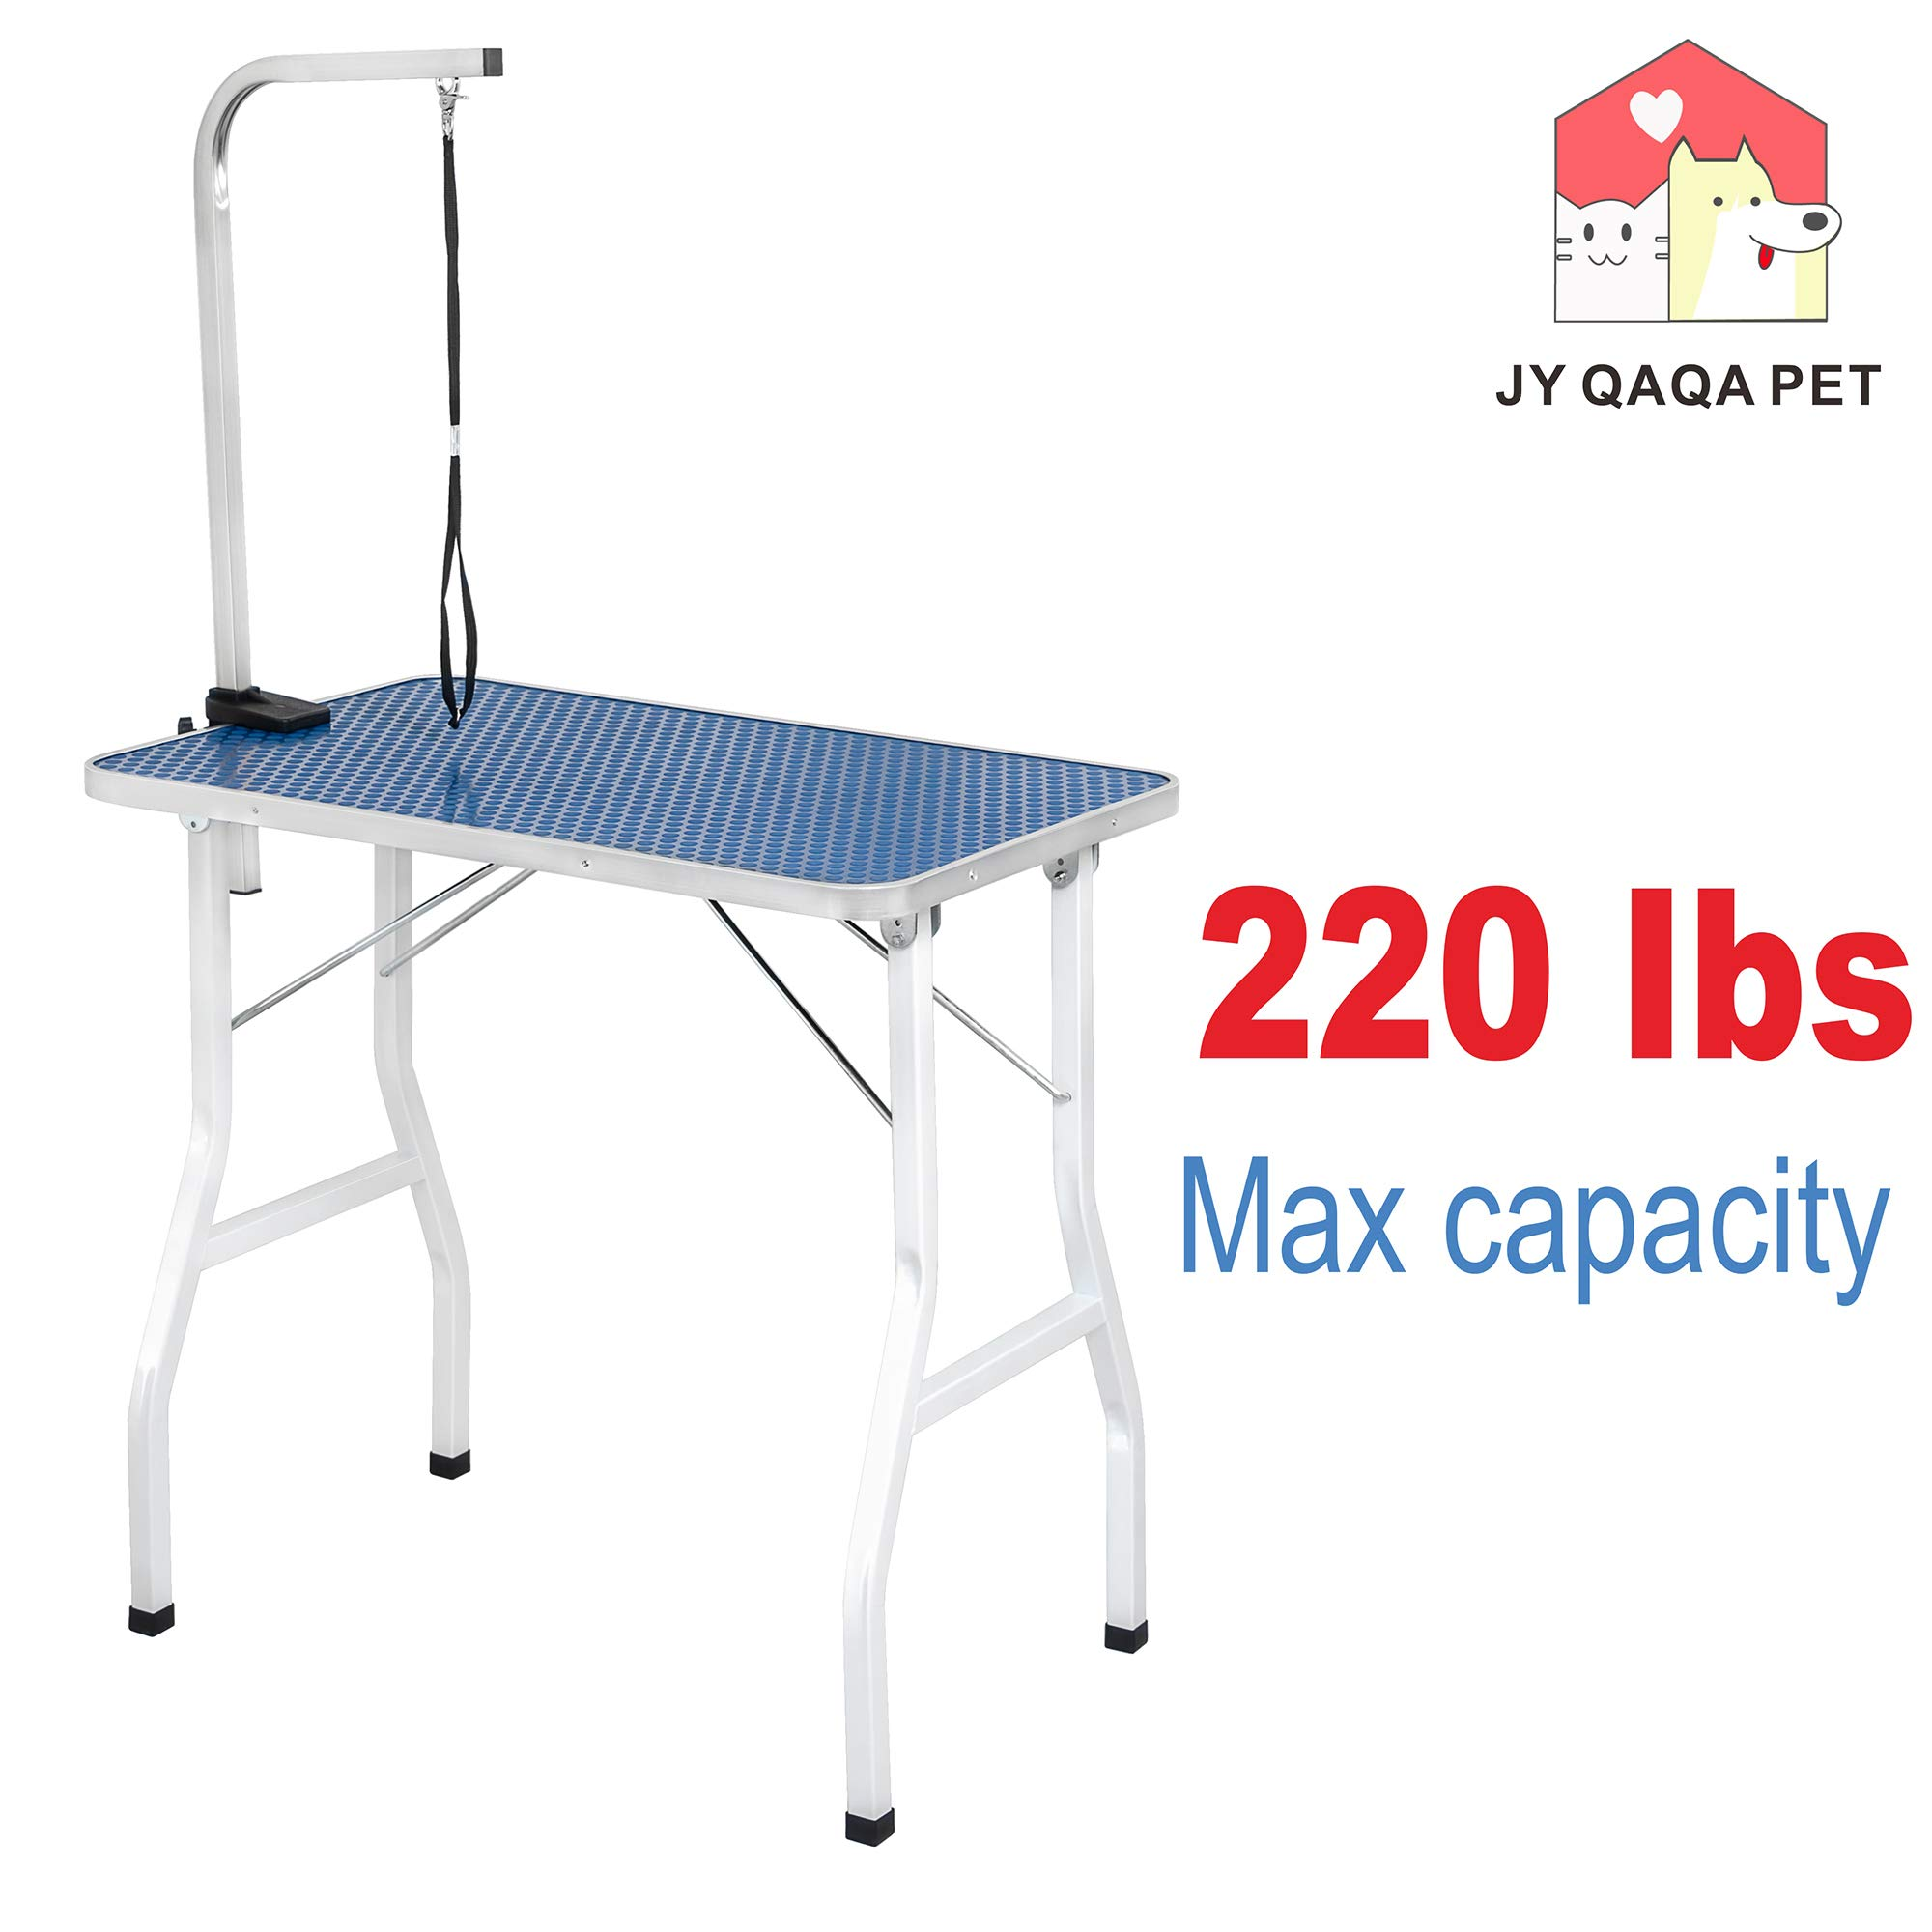 JY QAQA PET 32'' Professional Foldable Pet Dog Grooming Table with Adjustable Arm,Maximum Capacity Up to 220lbs by JY QAQA PET